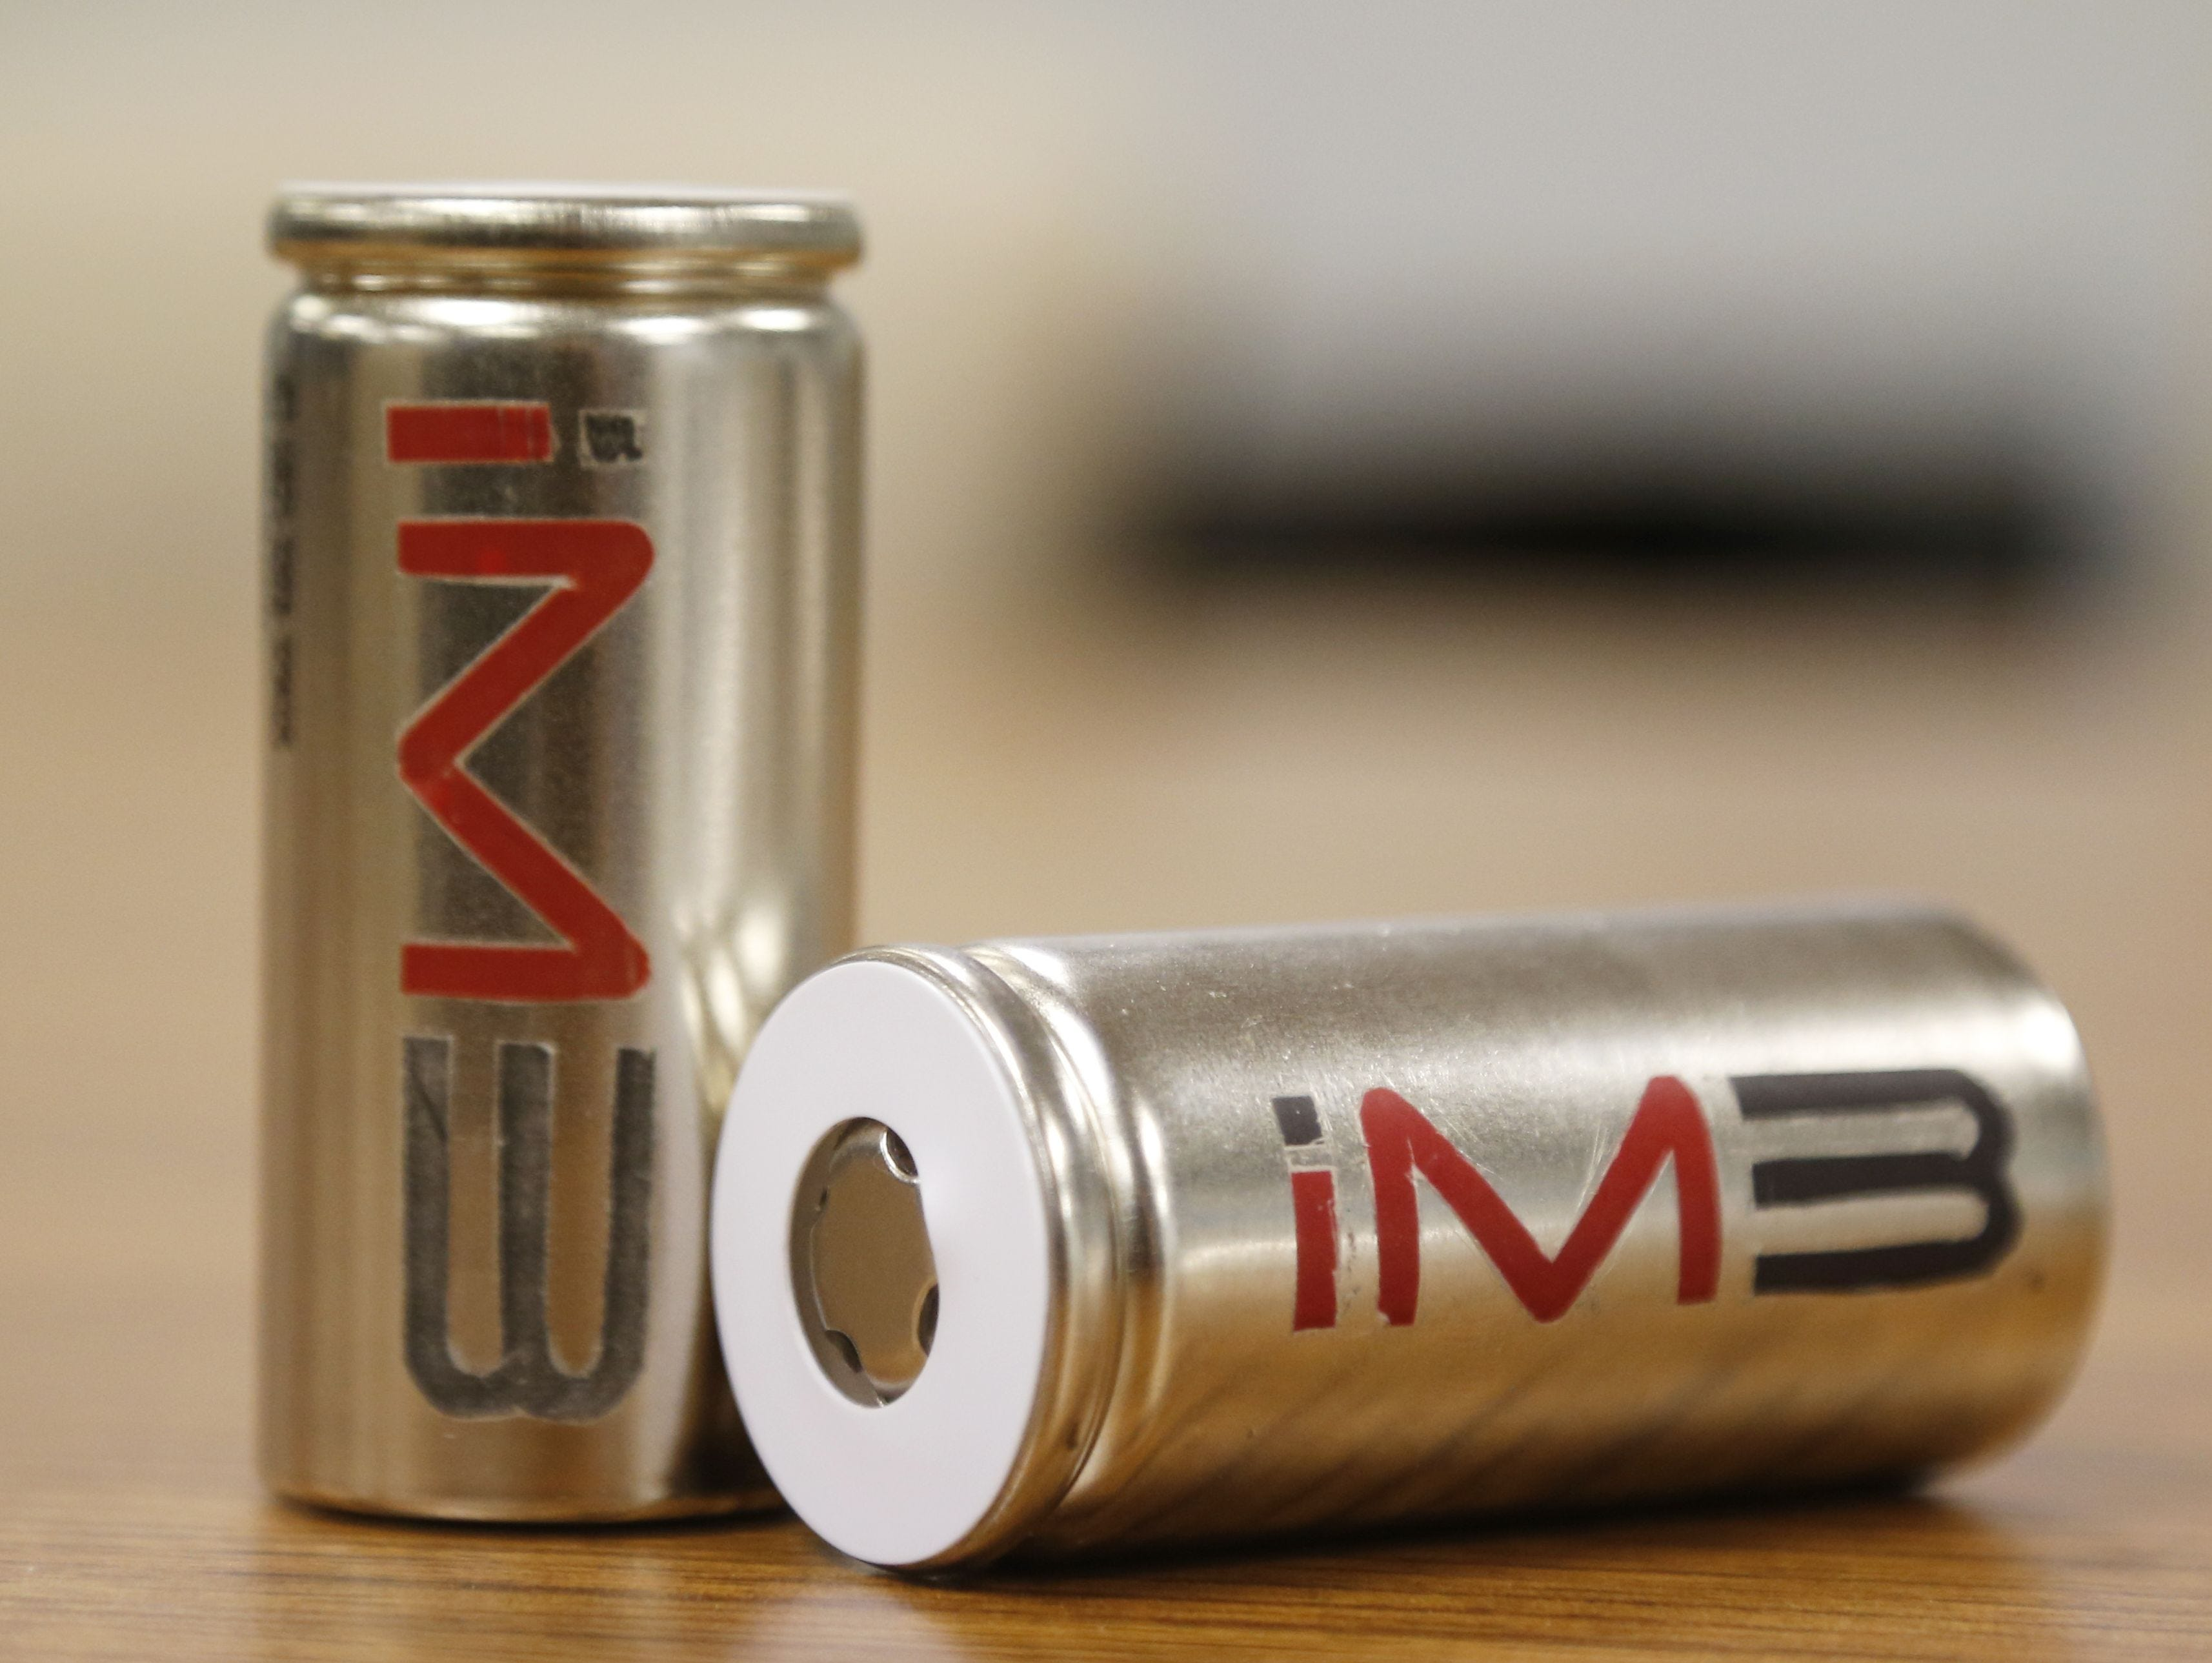 A bank of lithium ion battery cells produced by iM3NY